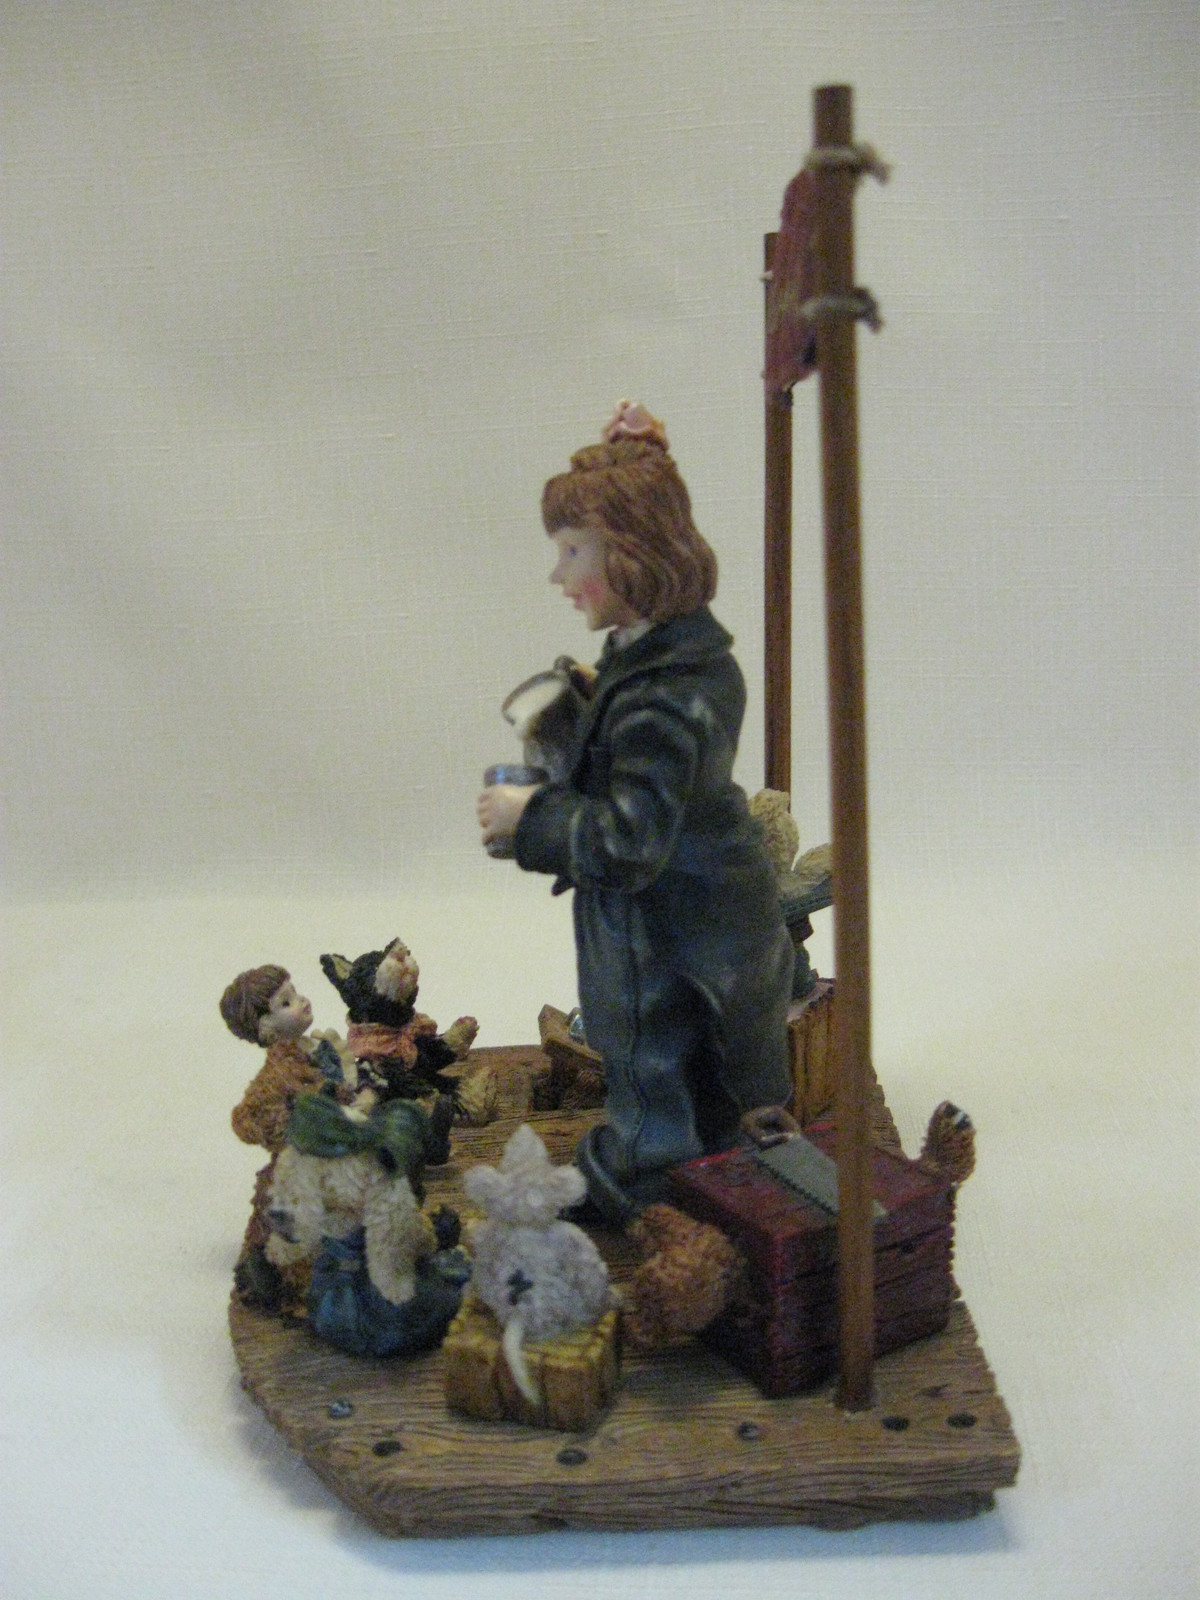 Yesterdays Child Figurine The Magic Show at 4 Limited Edition Boyd's Collection image 6